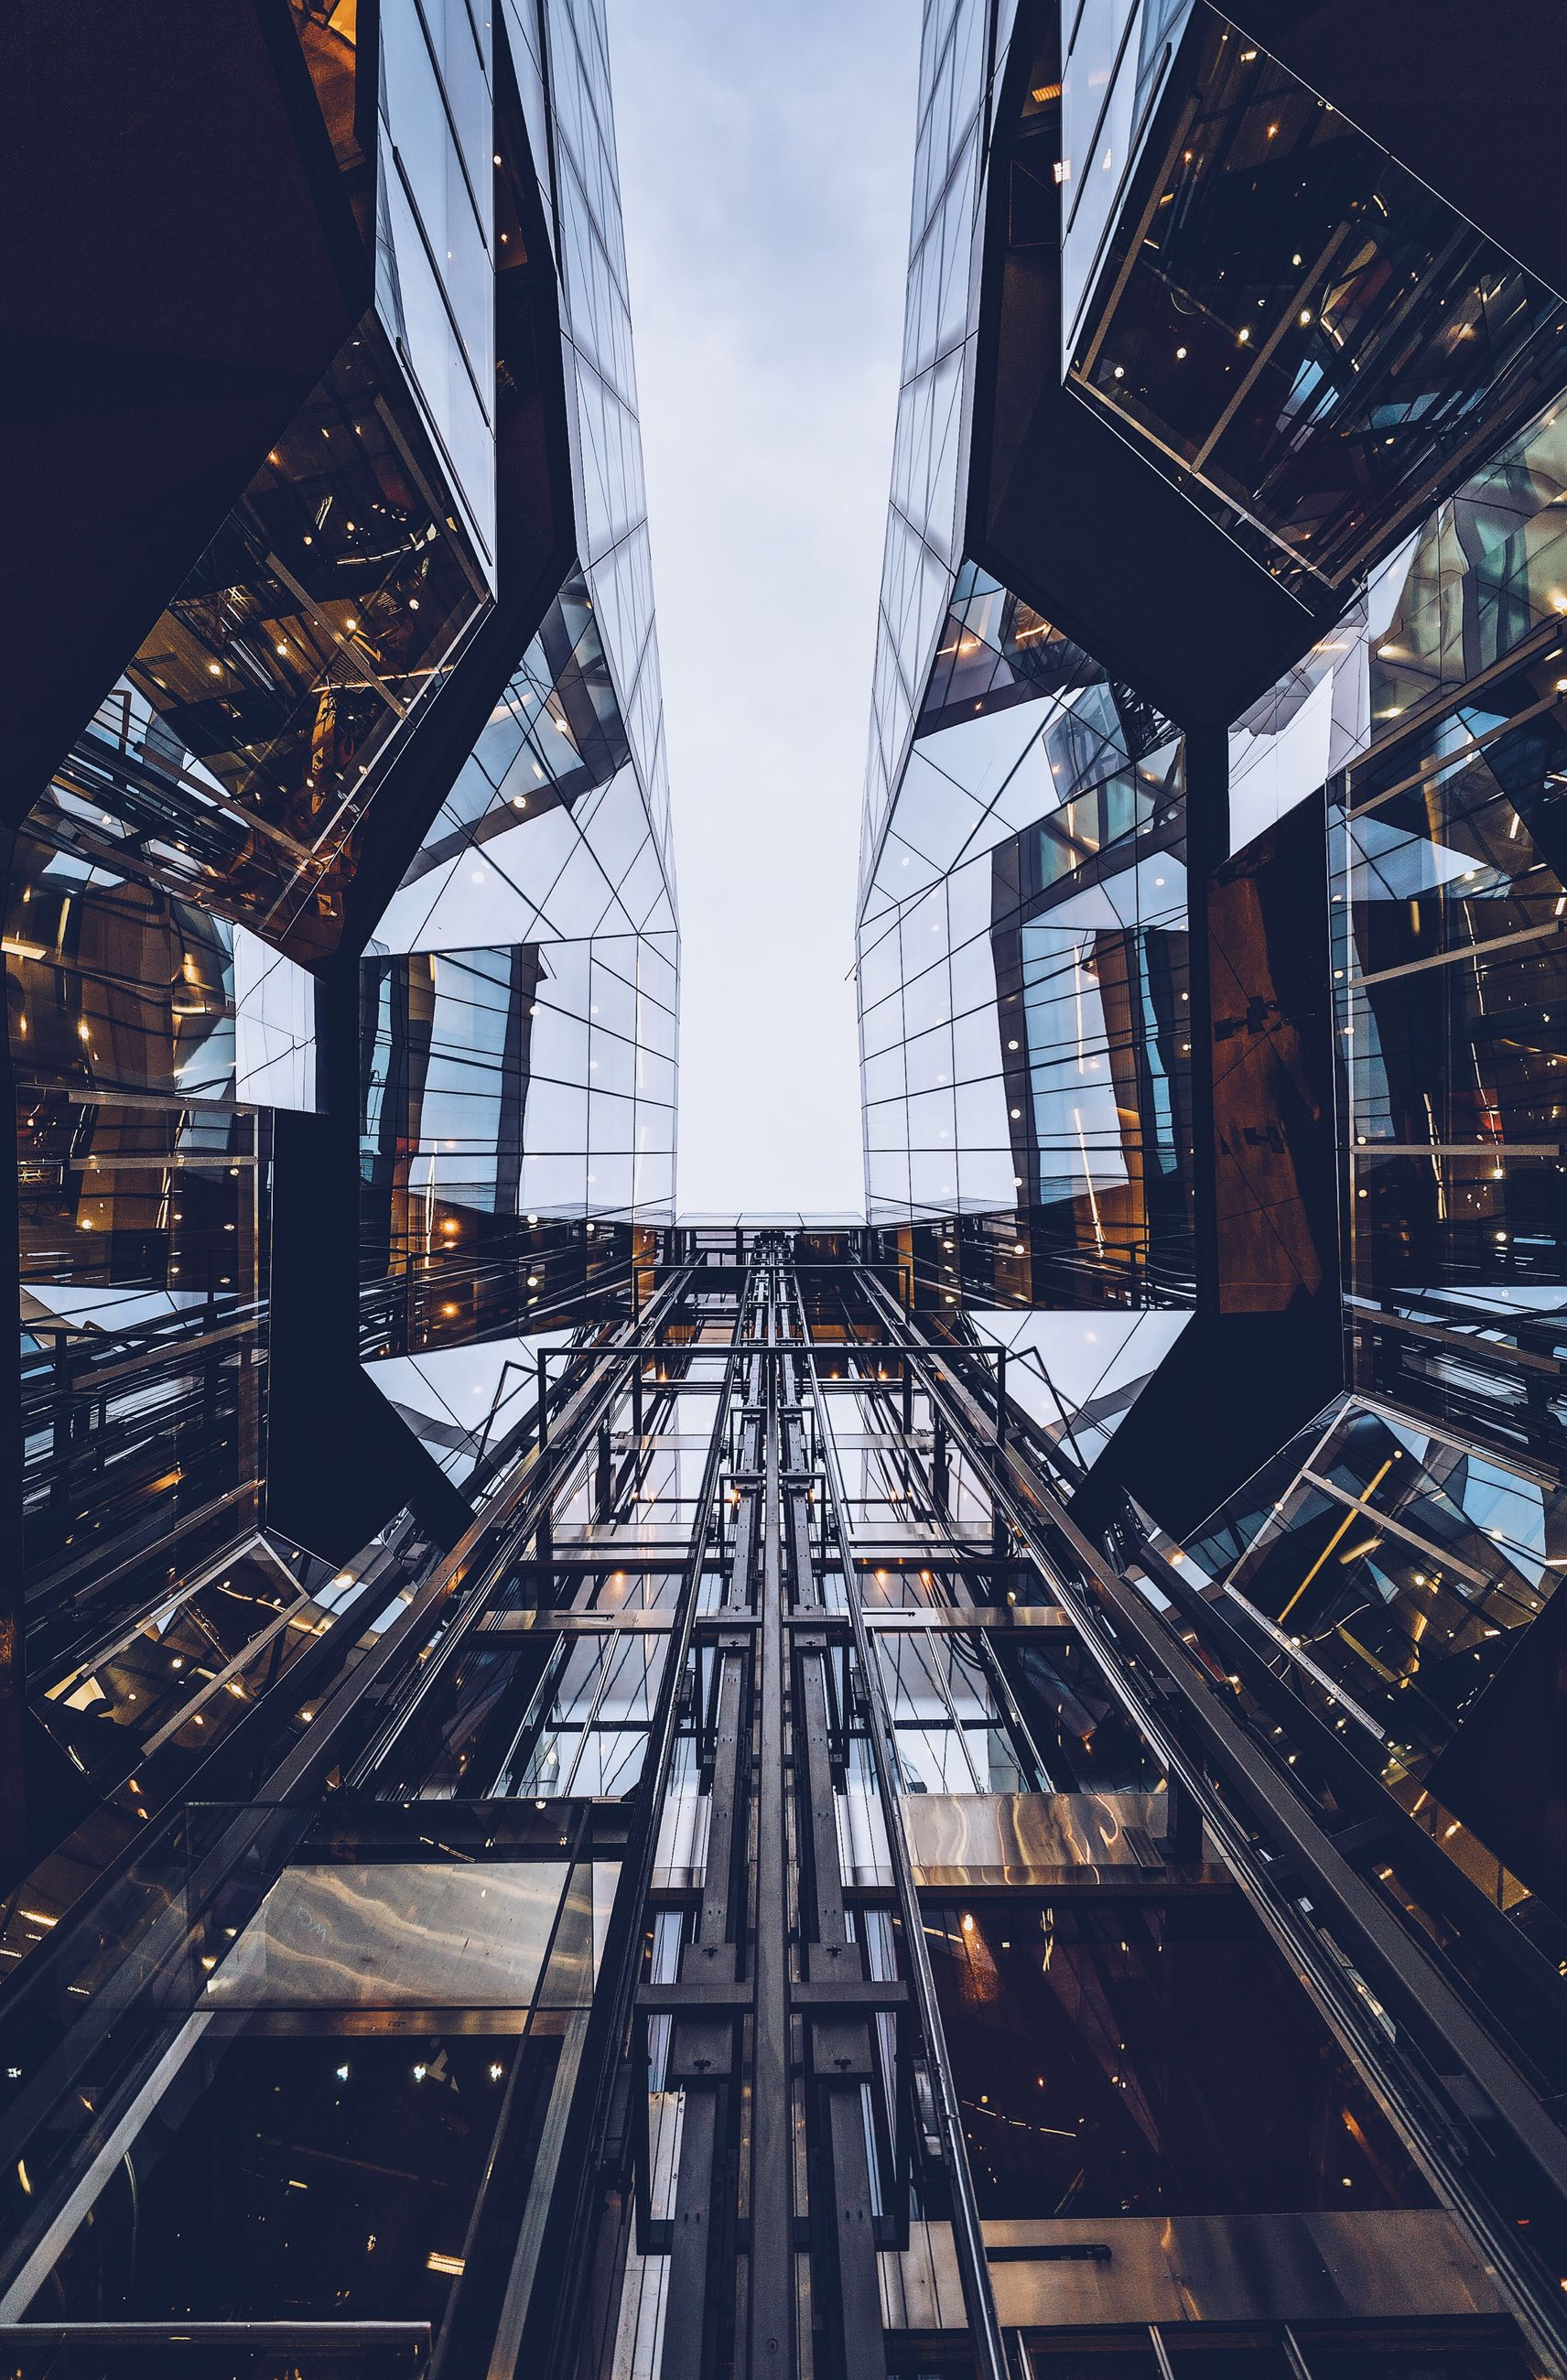 architecture, built structure, sky, building exterior, low angle view, no people, building, tall - high, nature, modern, city, day, metal, office building exterior, outdoors, transportation, railing, skyscraper, the way forward, glass - material, directly below